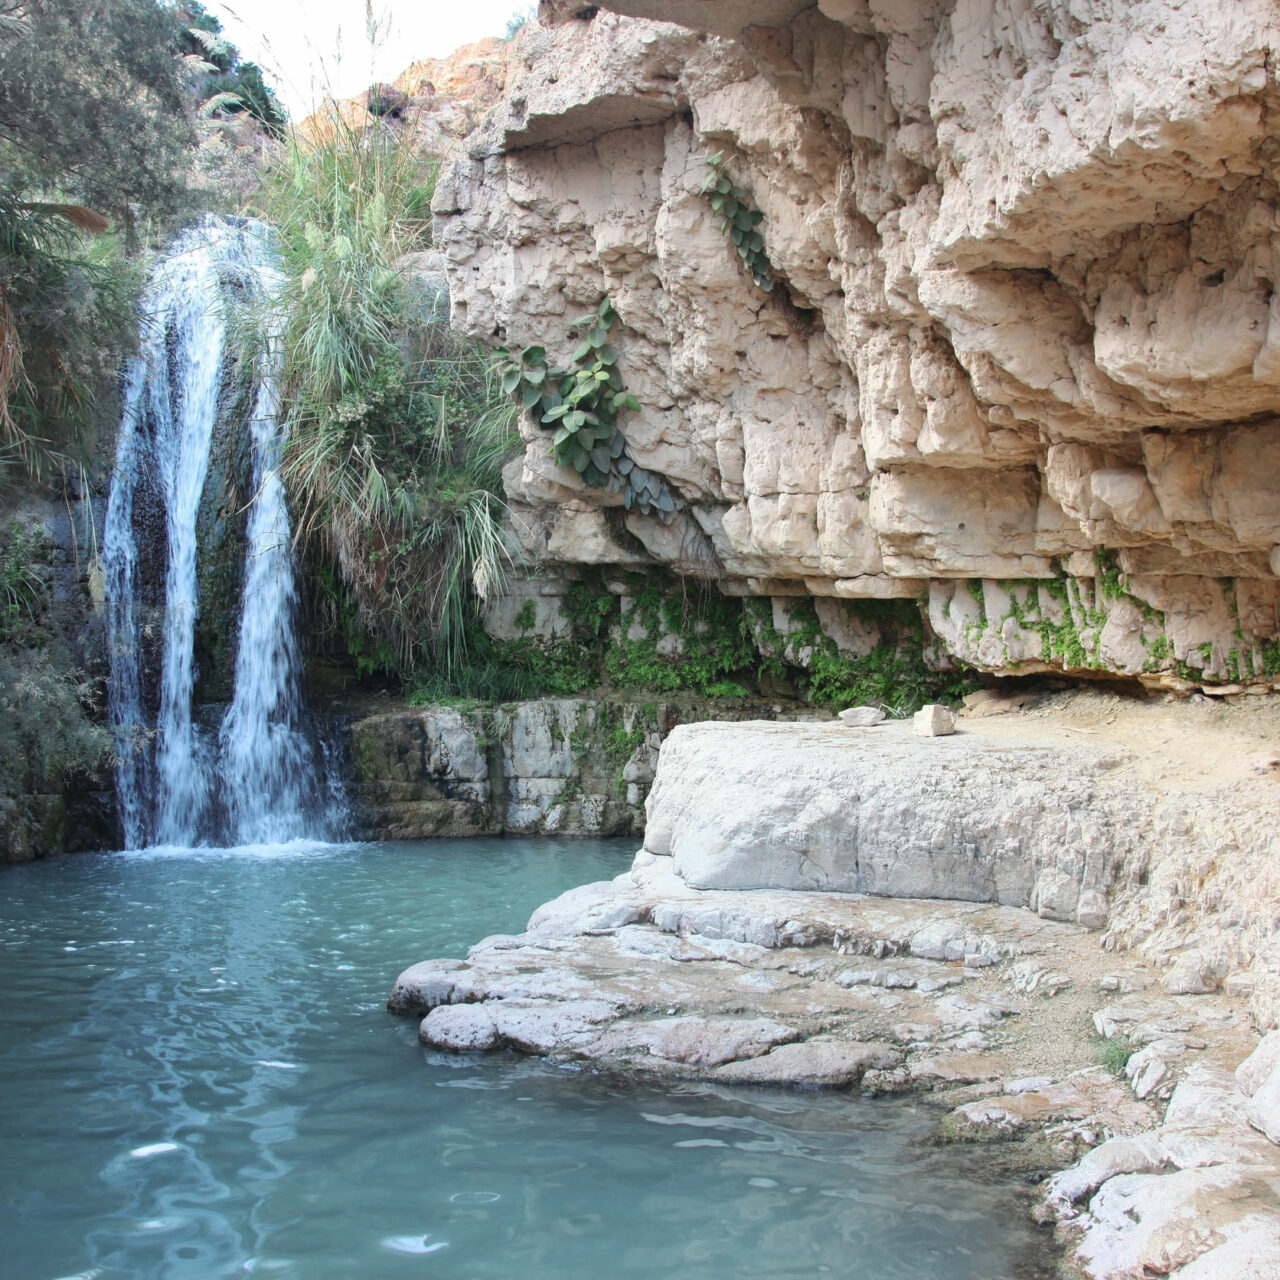 Waterfall in national park Ein Gedi near the Dead Sea in Israel